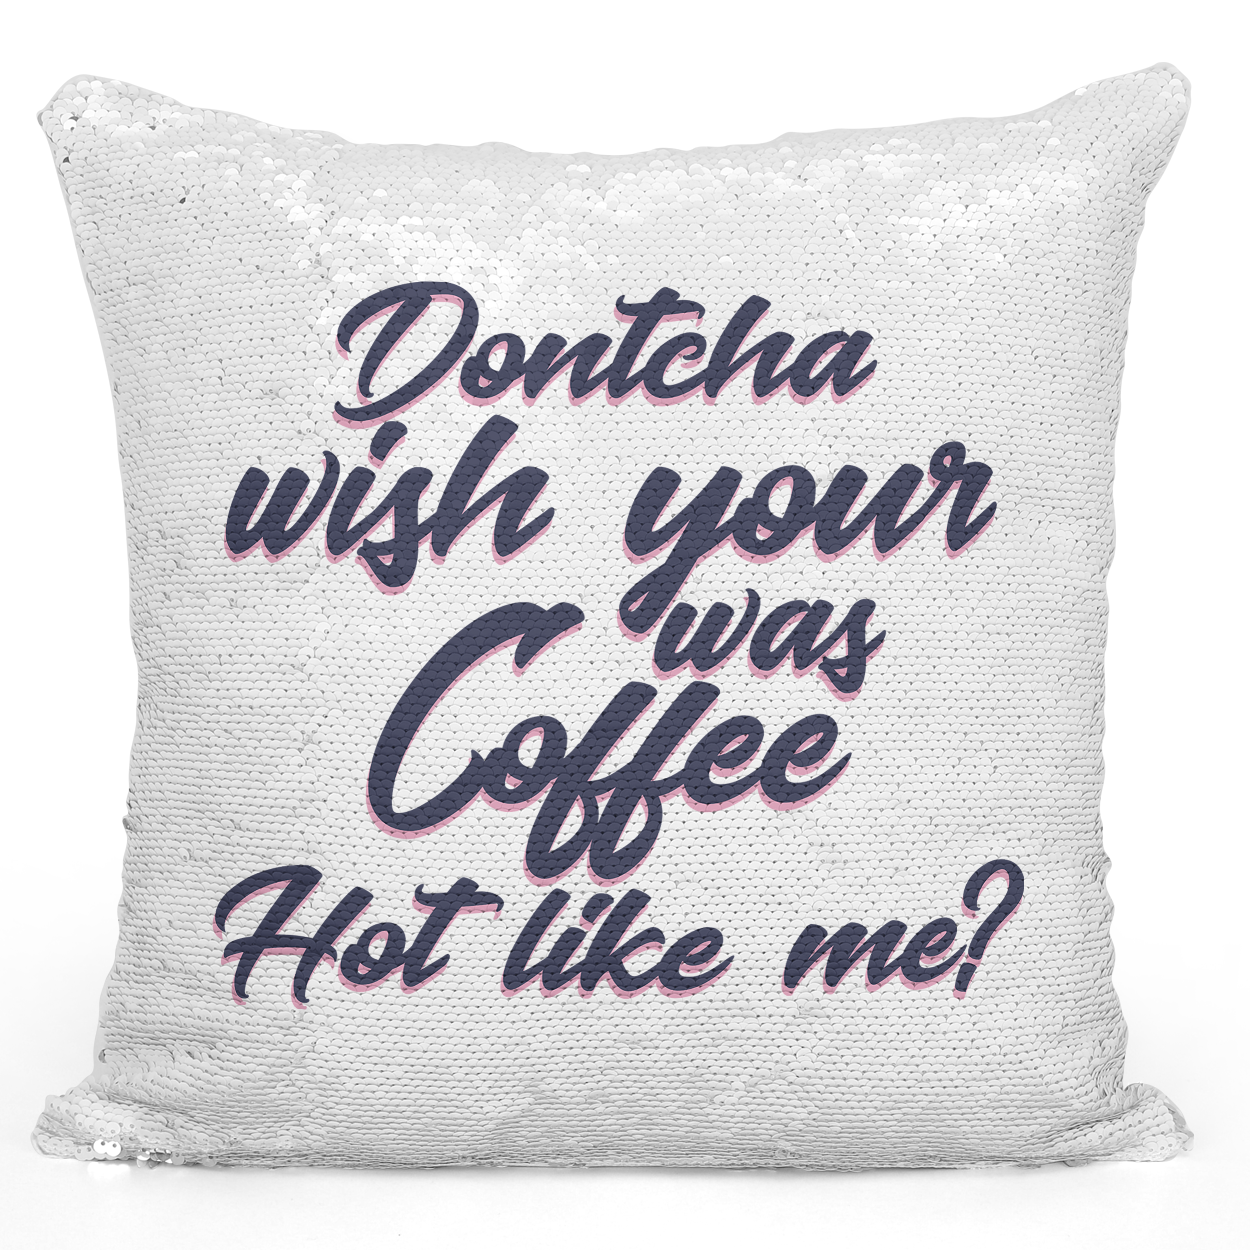 16x16 inch Sequin Throw Pillow Magic Flip Pillow Dont You Wish Your Coffee Was Hot Like Me Funny Parody Pillow Loud Universe